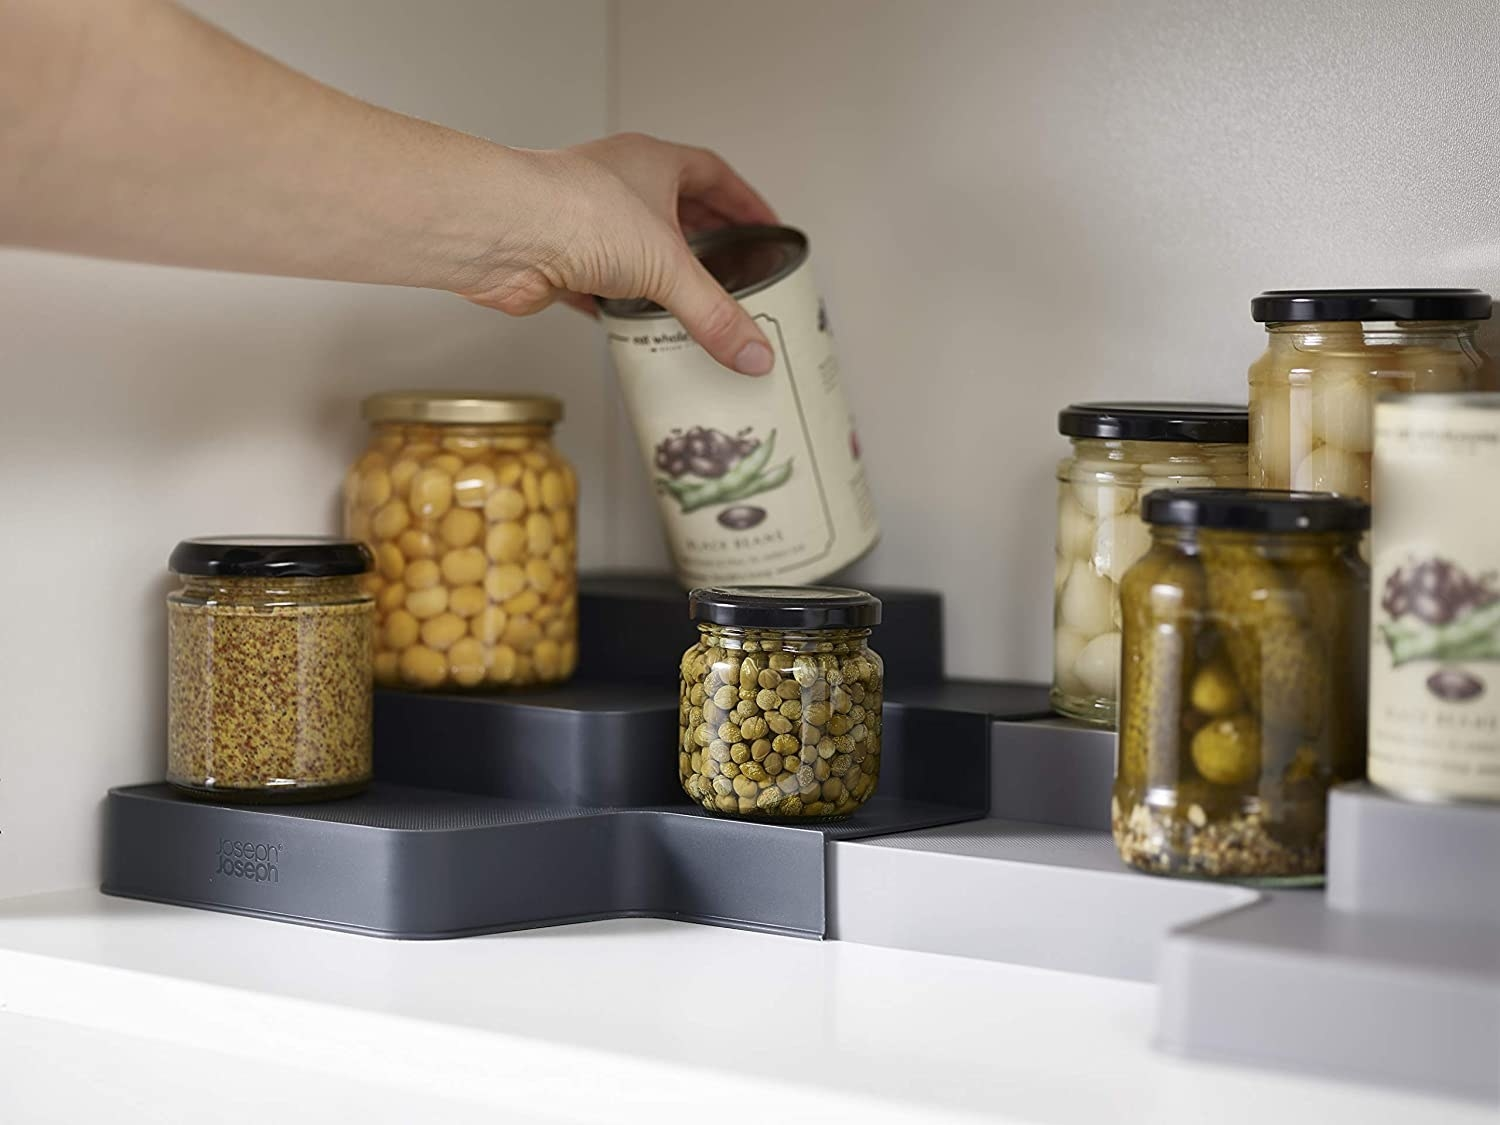 A person placing a can of beans on a small shelf in a cupboard